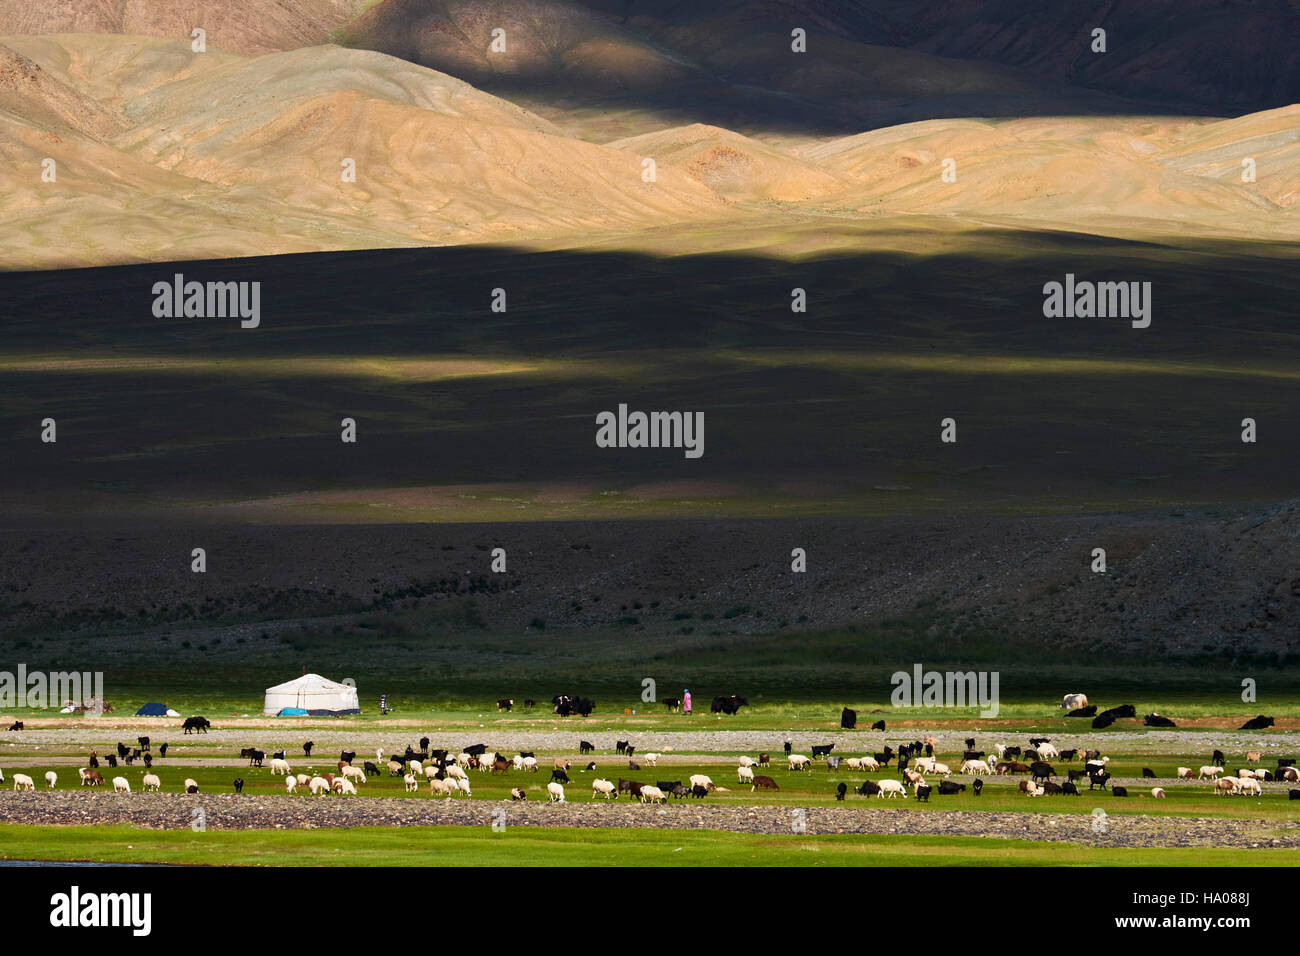 Mongolia, Bayan-Ulgii province, western Mongolia, the colored mountains of the Altay, nomad camp of the Kazakh people - Stock Image